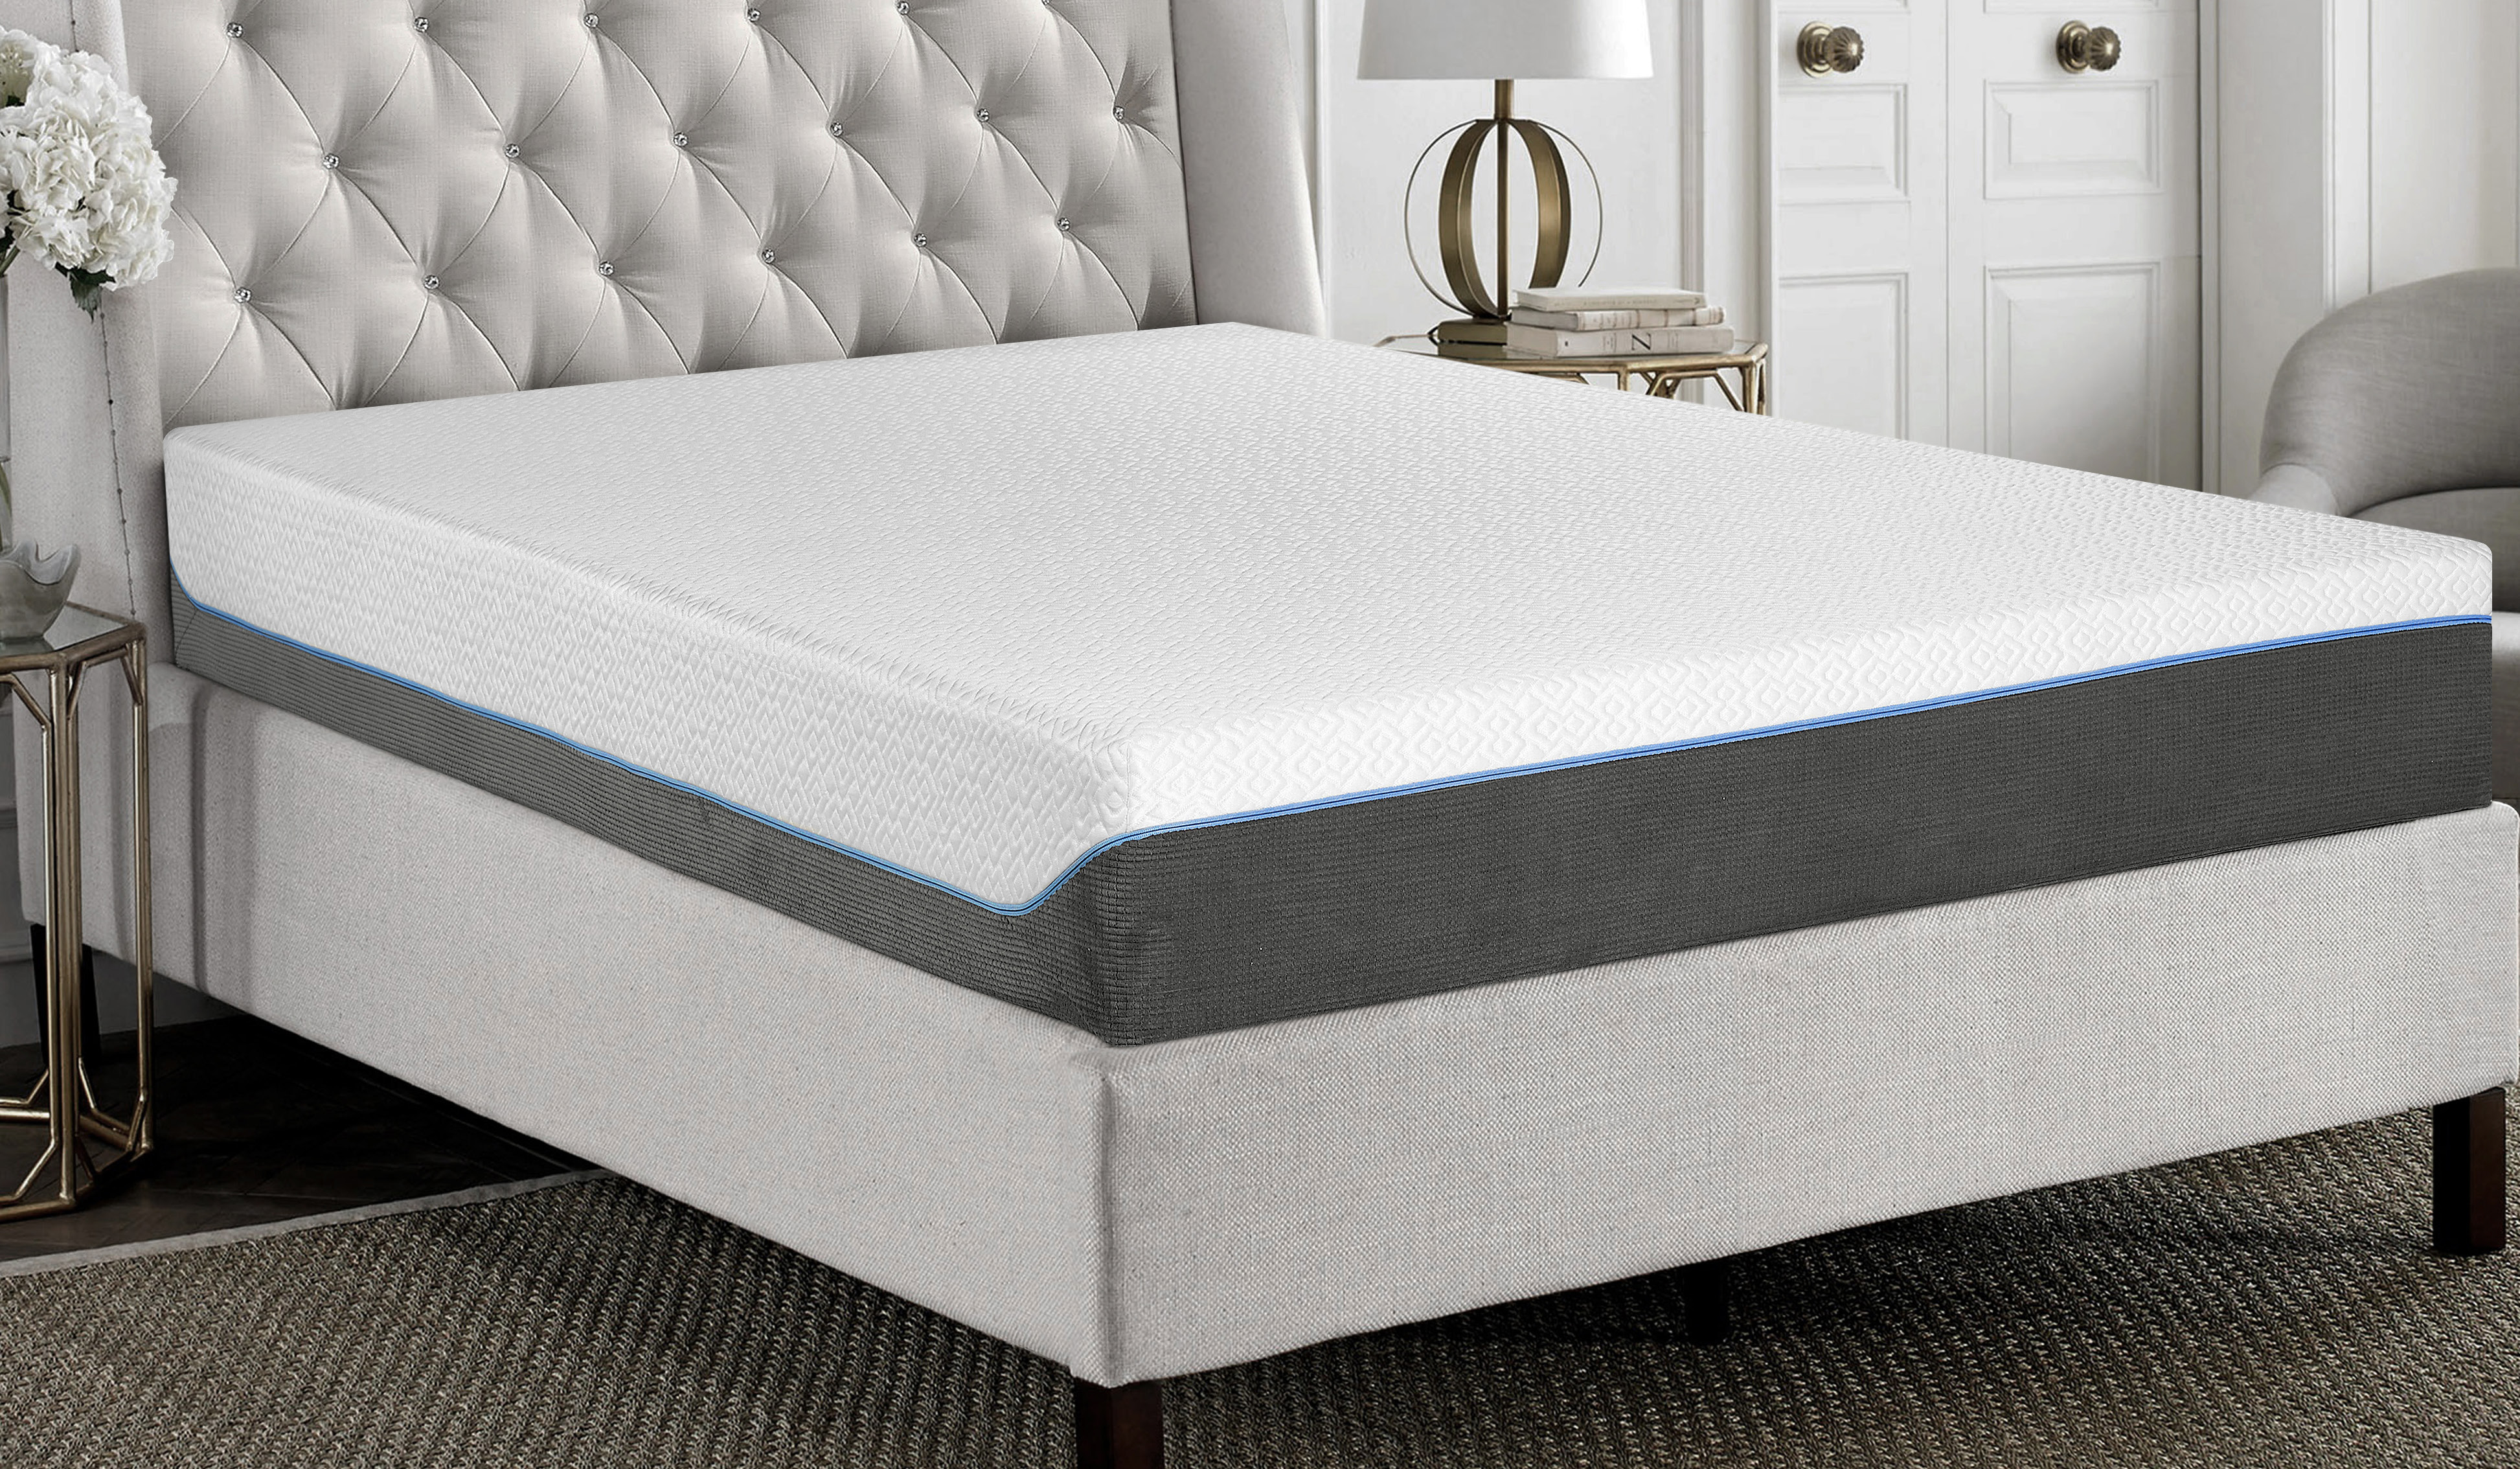 Extra Cooling Quilted Material Mattress